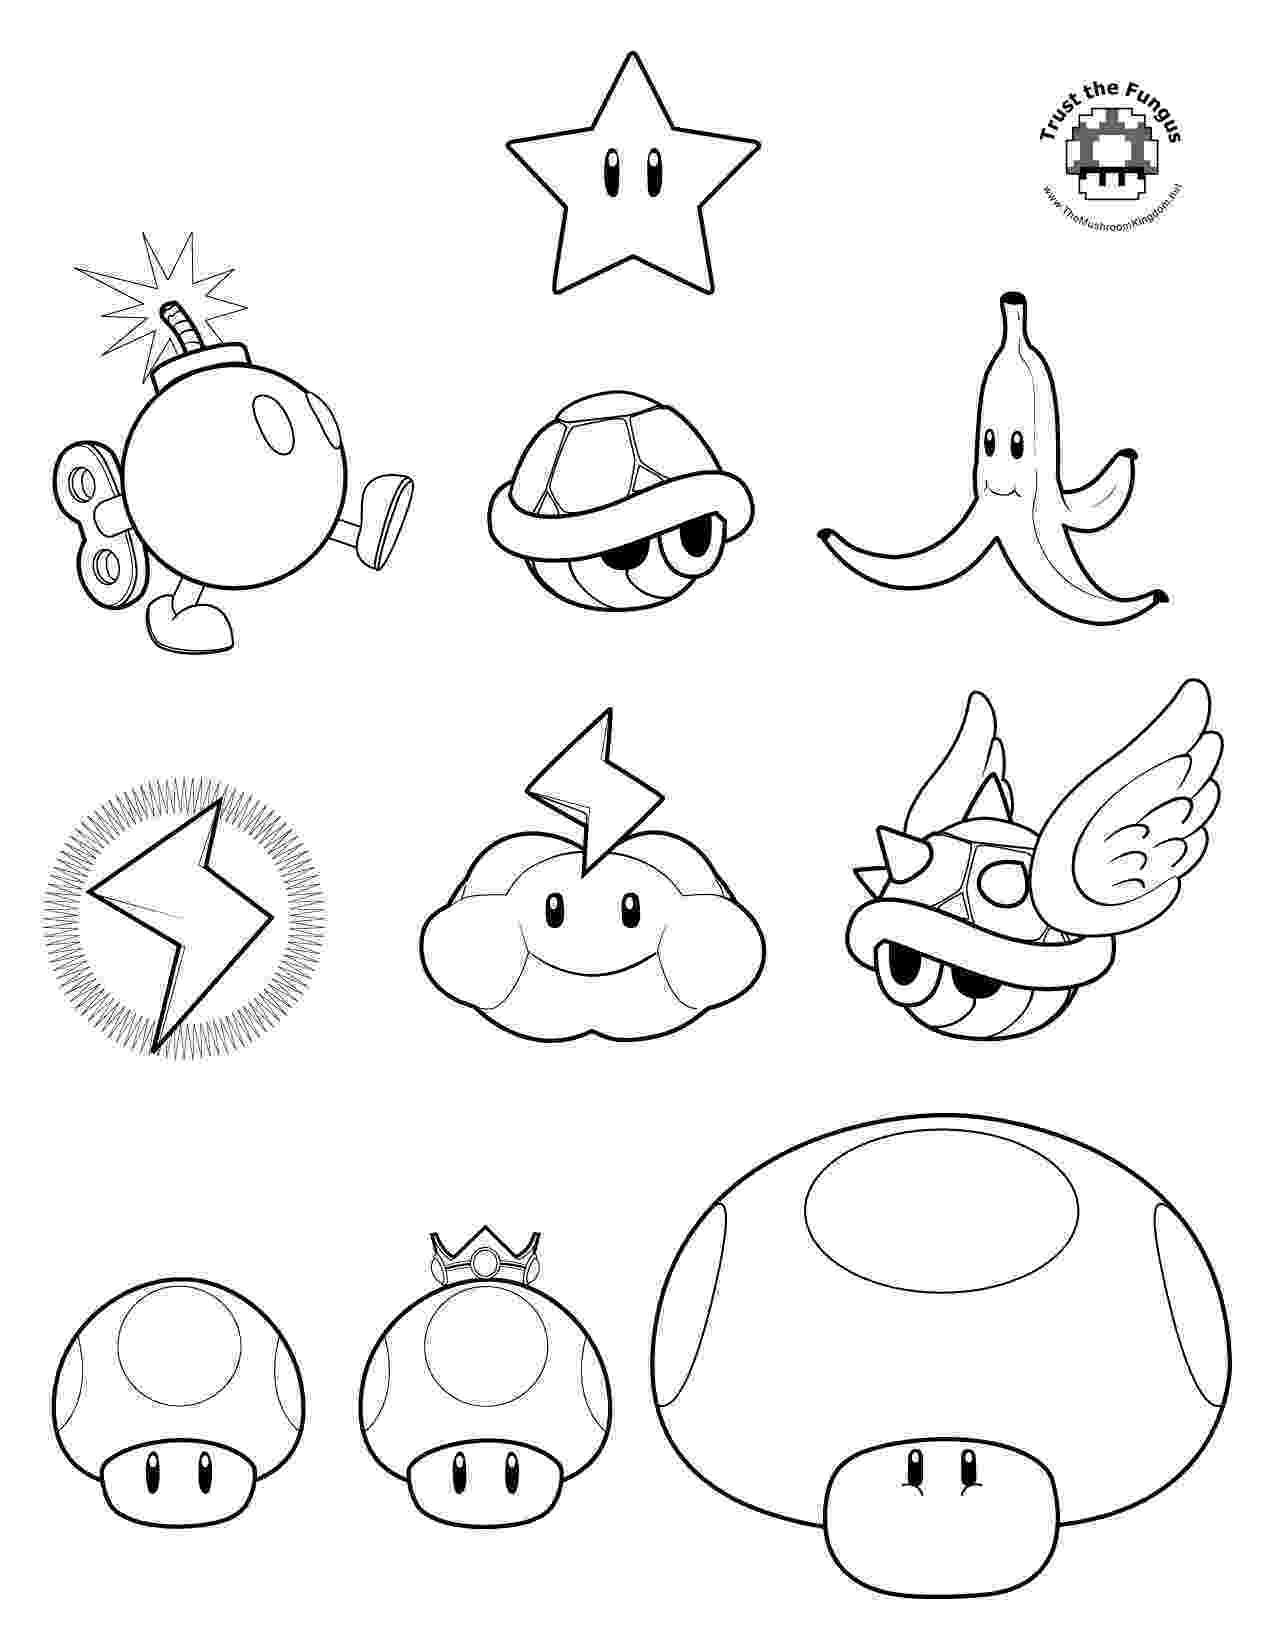 mario kart wii coloring pages mario kart 8 coloring pages free download on clipartmag coloring mario wii kart pages